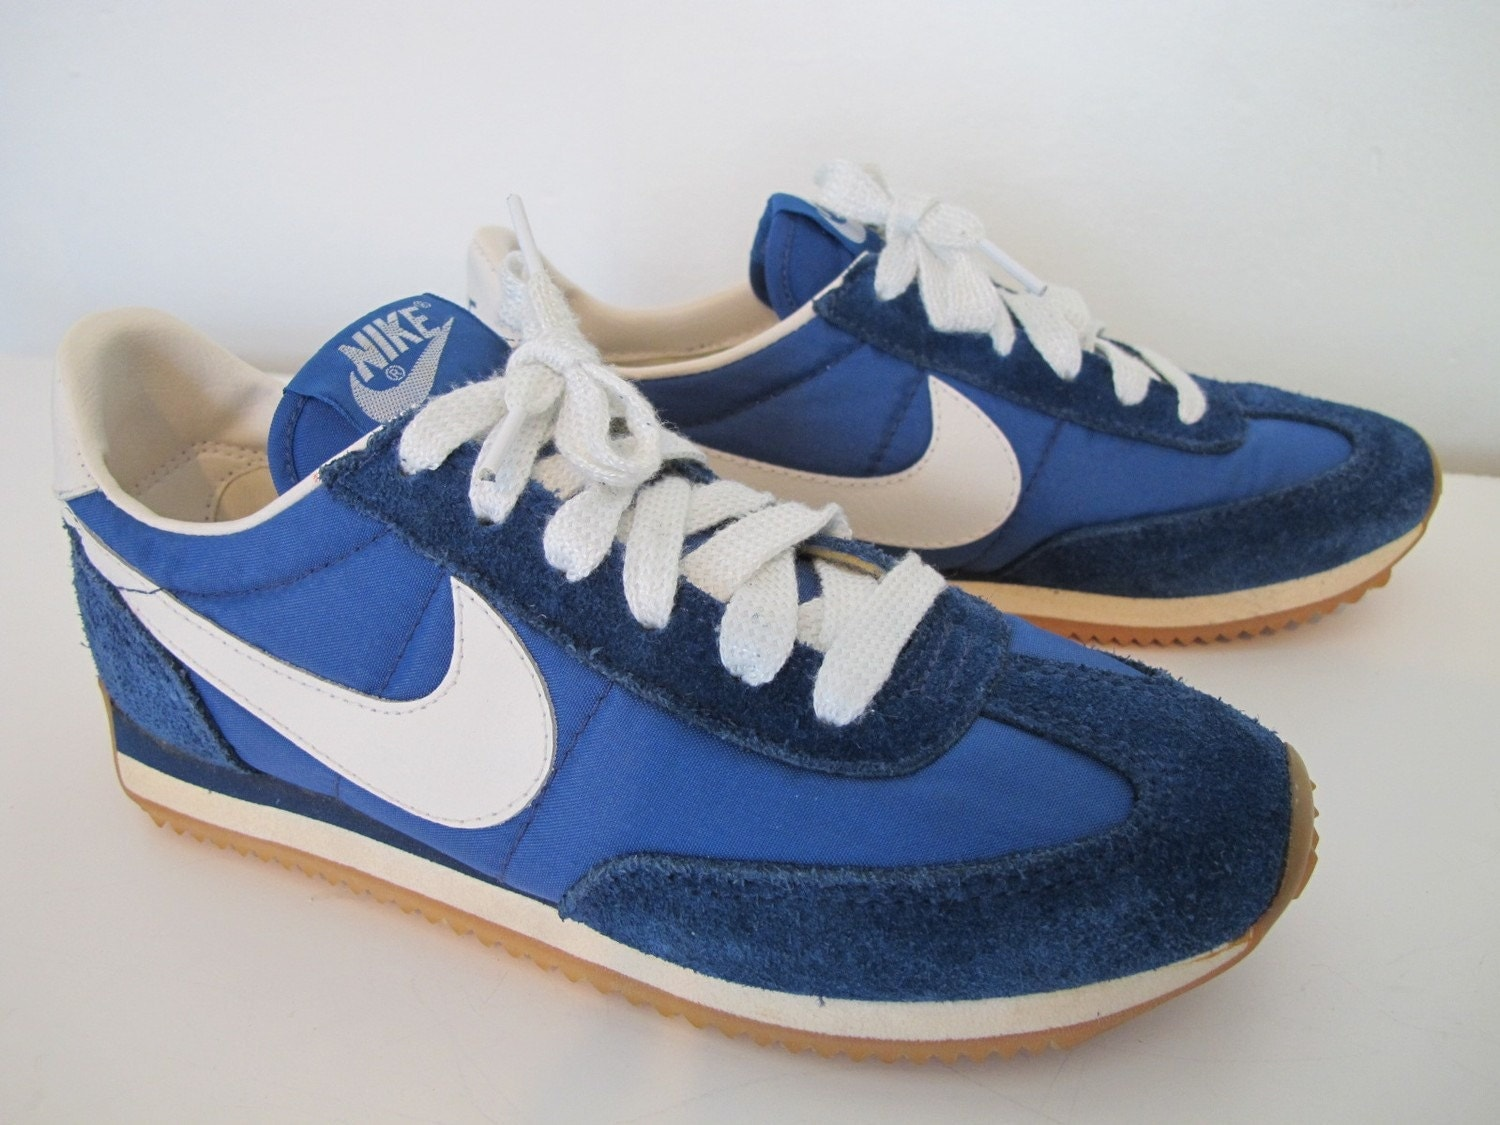 Vintage Blue and White Leather Nike Swoosh by FlowerheadVintage